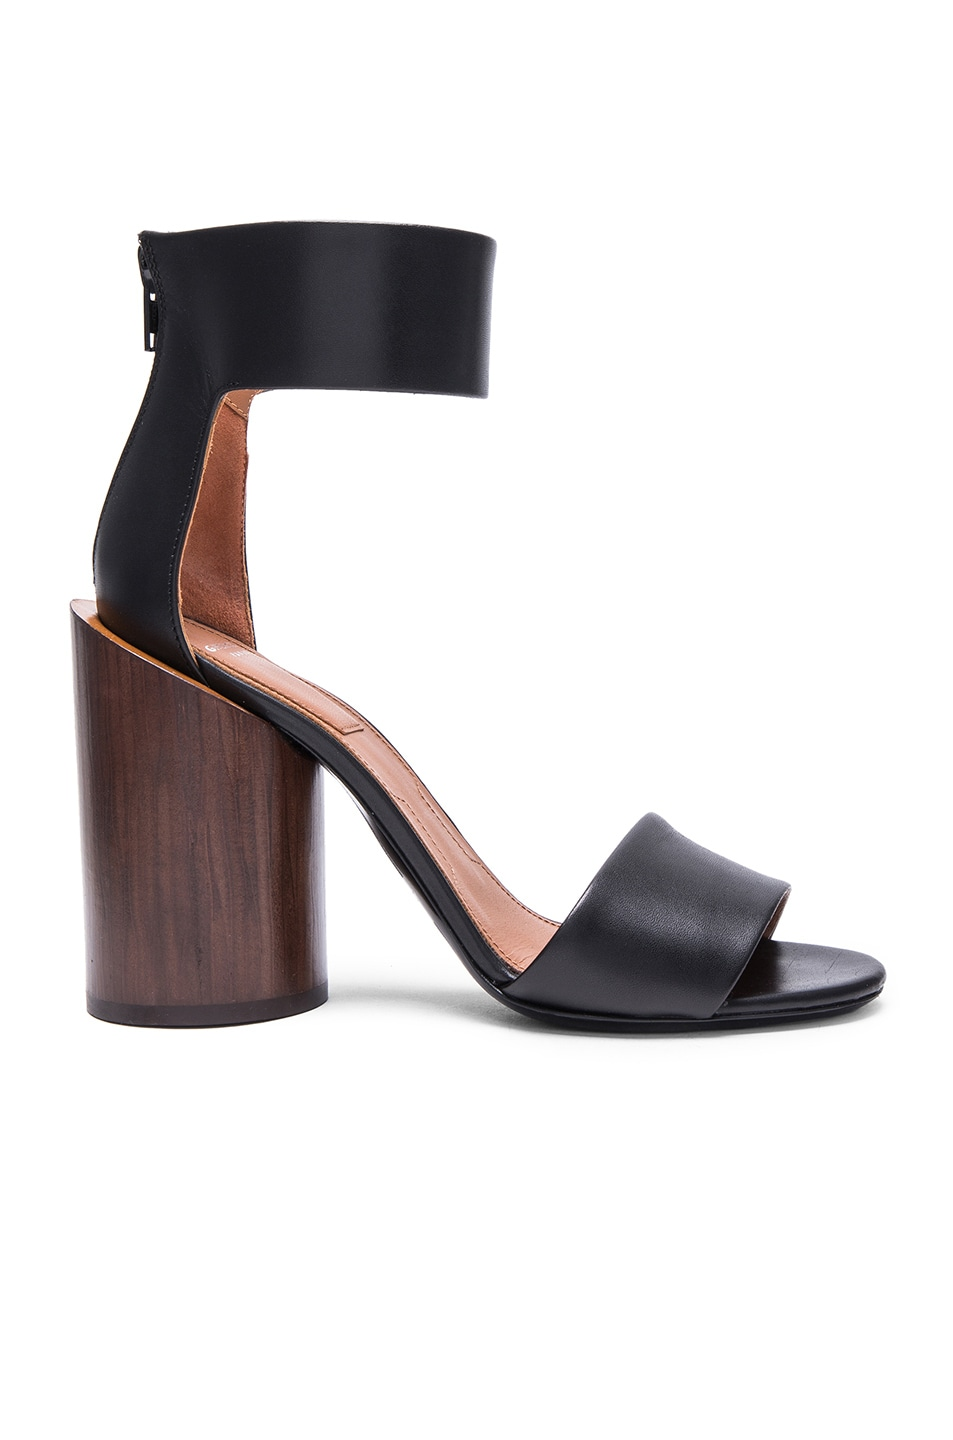 b3010d22521 Image 1 of Givenchy Polly Shiny Leather Sandals with Wood Heel in Black    Brown